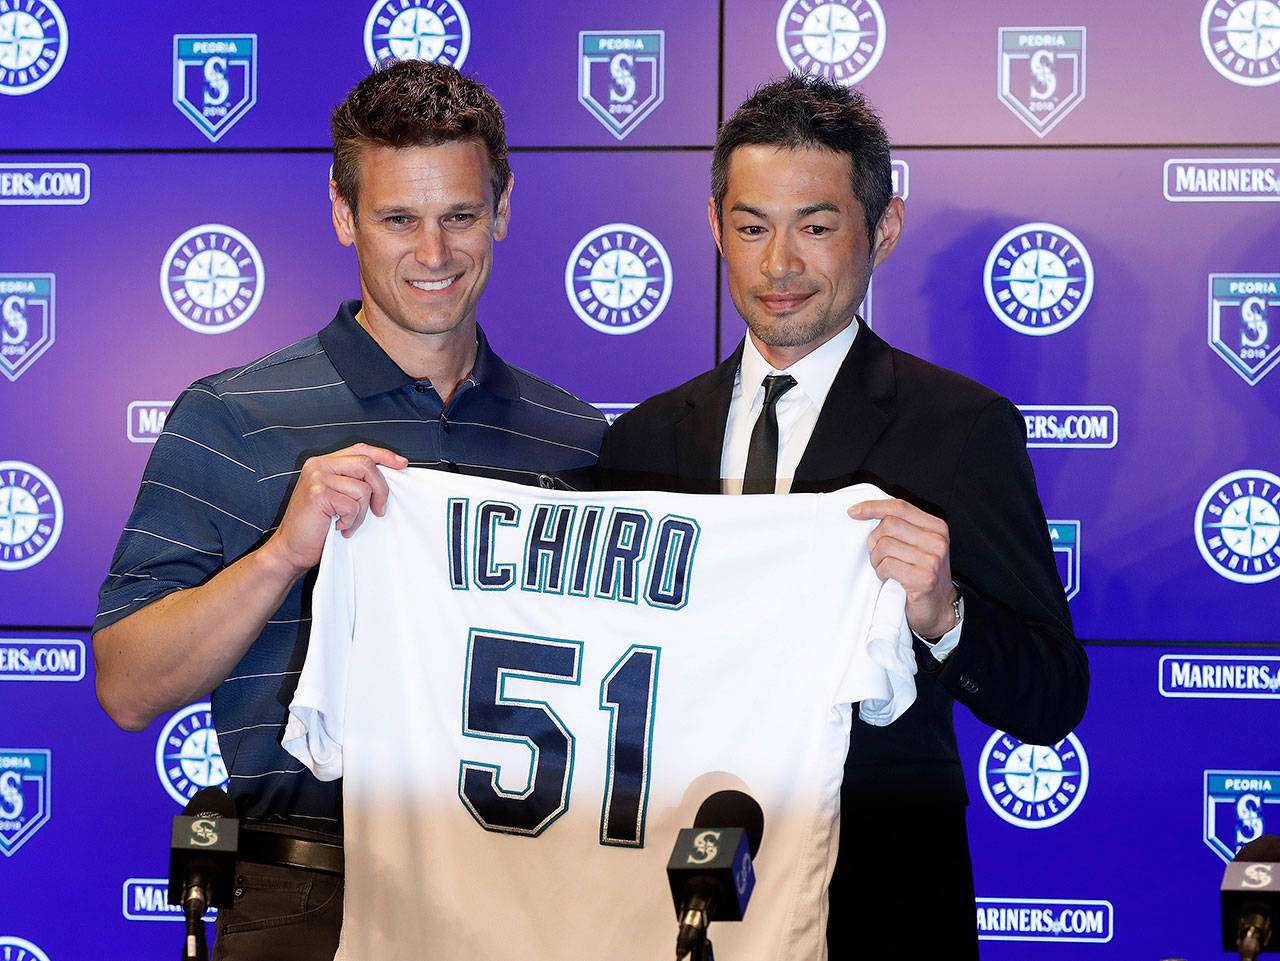 Ichiro Suzuki (right) holds up his jersey with Mariners' general manager Jerry Dipoto during a news conference at the teams' spring training complex on Wednesday in Peoria, Ariz. Ichiro, who starred in Seattle from 2001 until he was traded in 2012, signed a one-year deal to return to the Mariners. (AP Photo/Matt York)